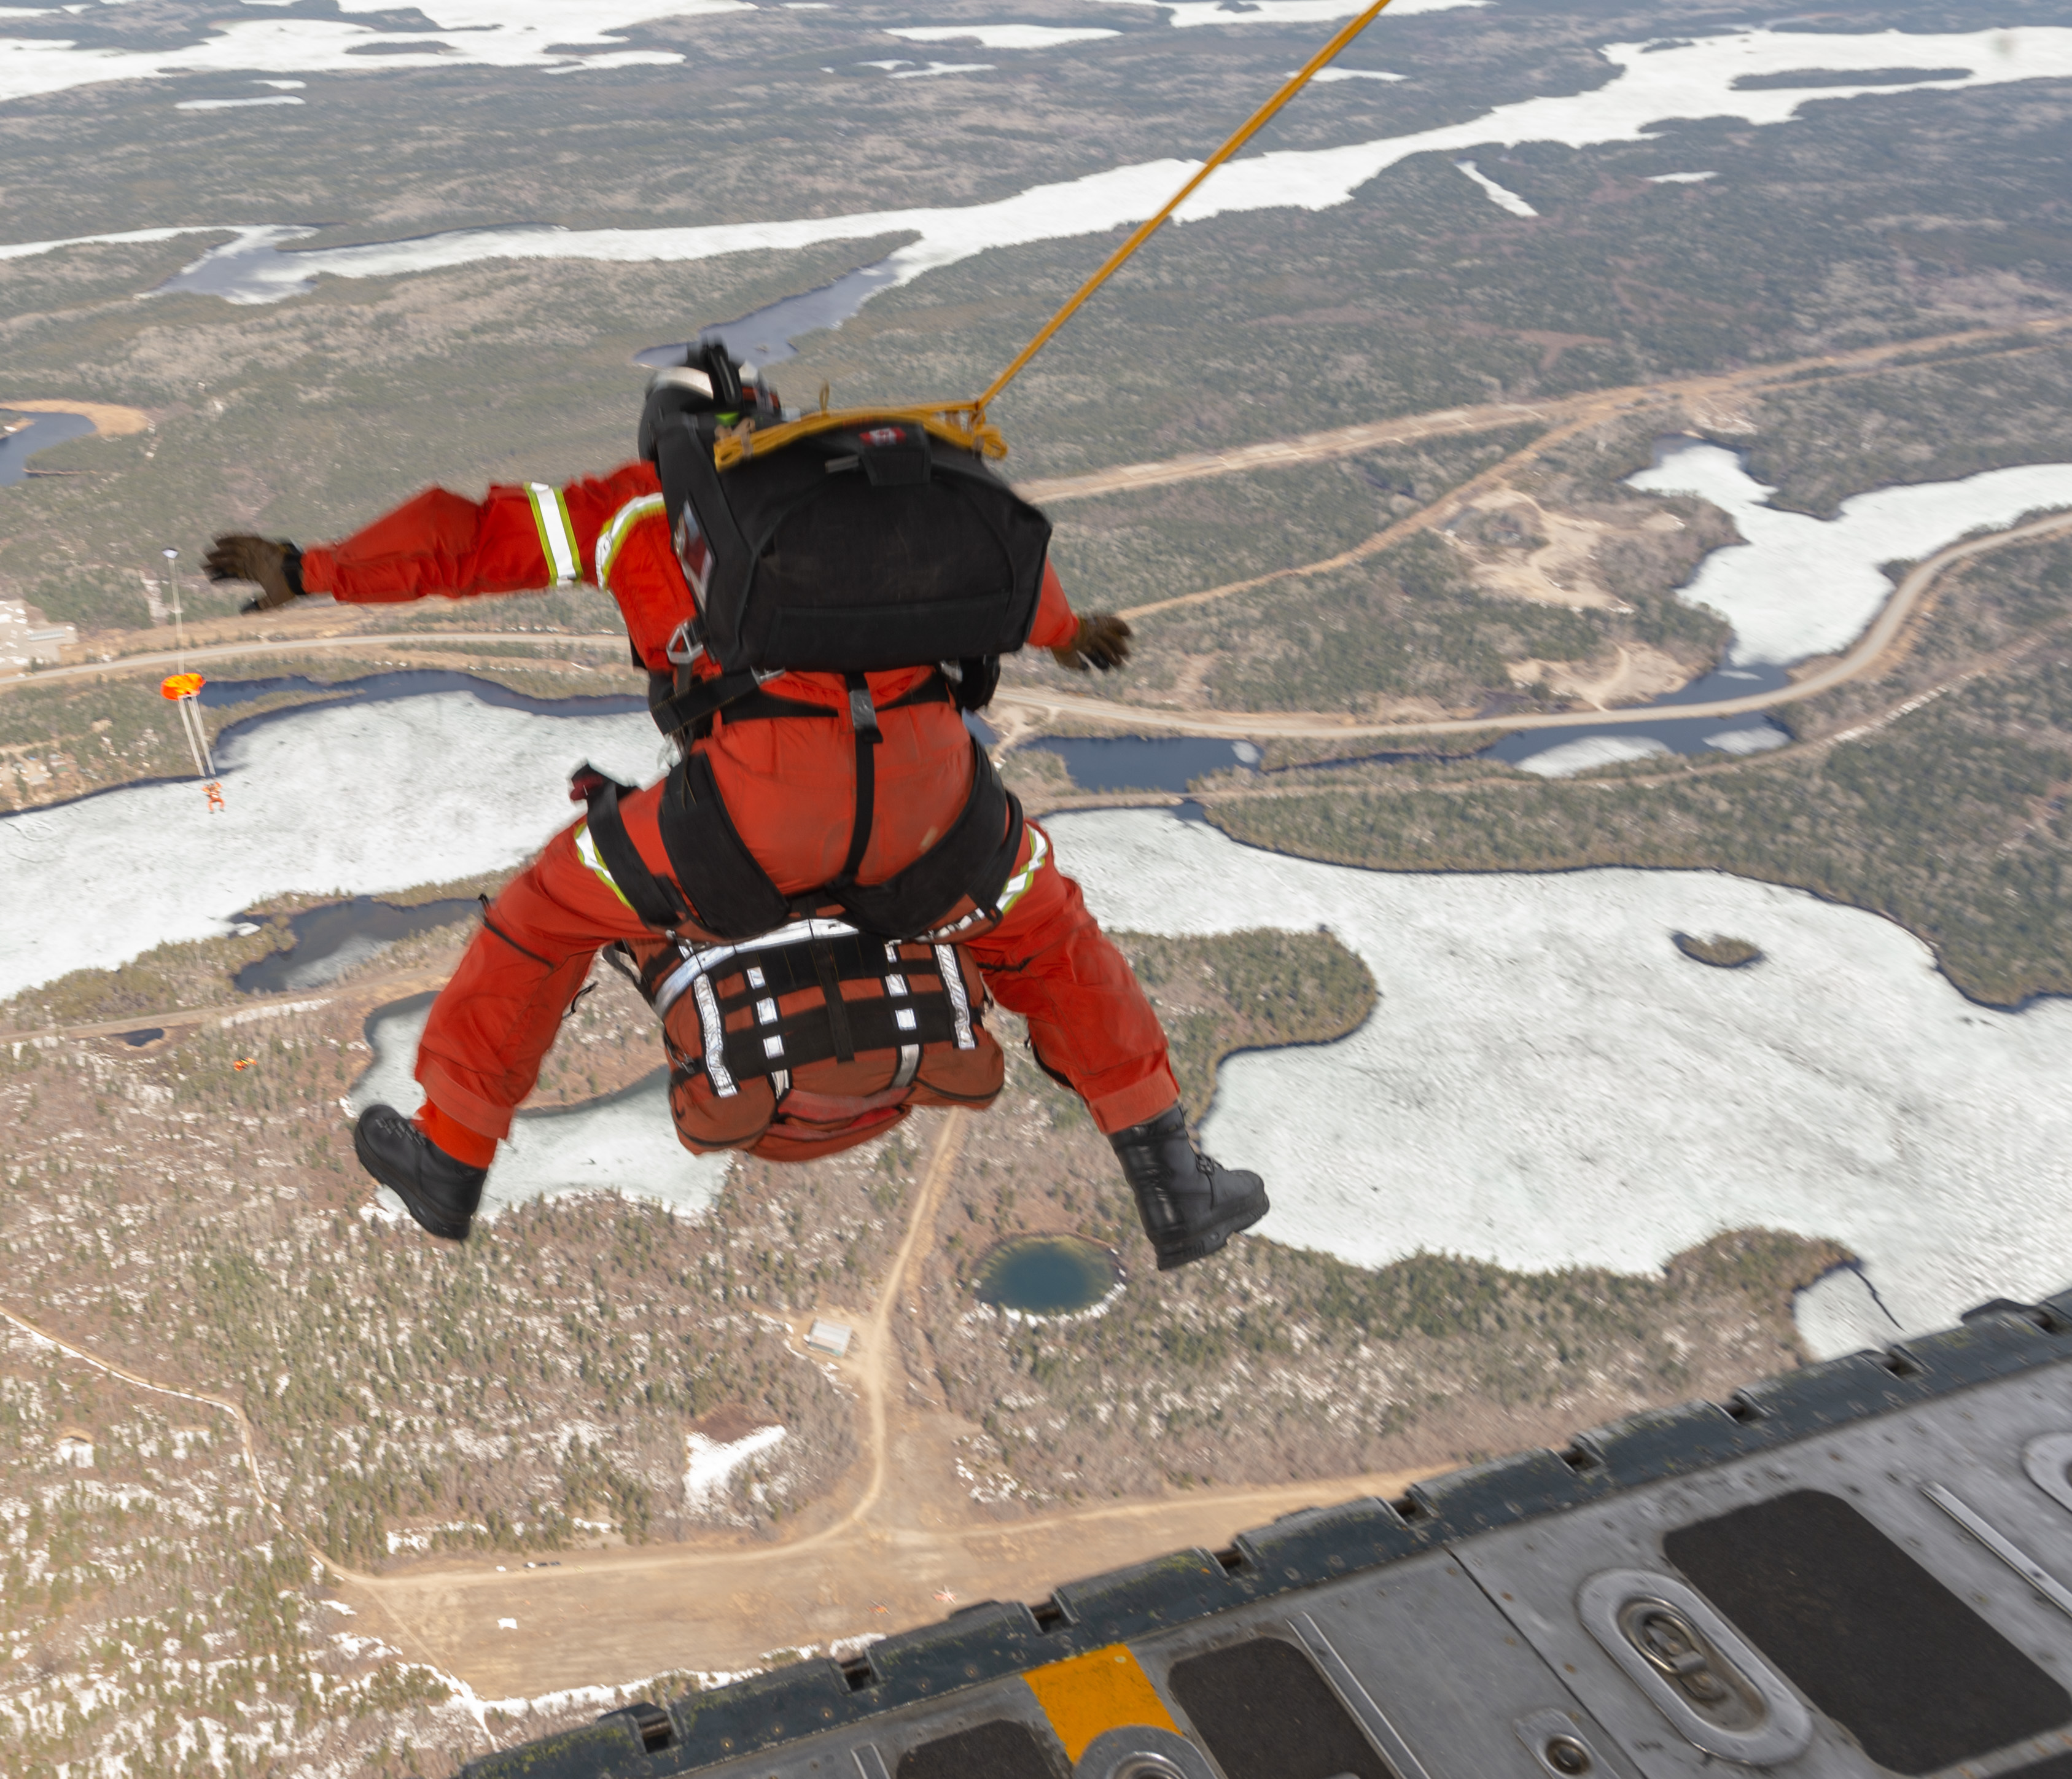 On May 8, 2019, an RCAF search and rescue technician from the 435 Transport and Rescue Squadron parachutes into a simulated aircraft crash site during Chinthex 2019, held near Thunder Bay, Ontario. PHOTO: Corporal Bryce Cooper, WG2019-0191-115